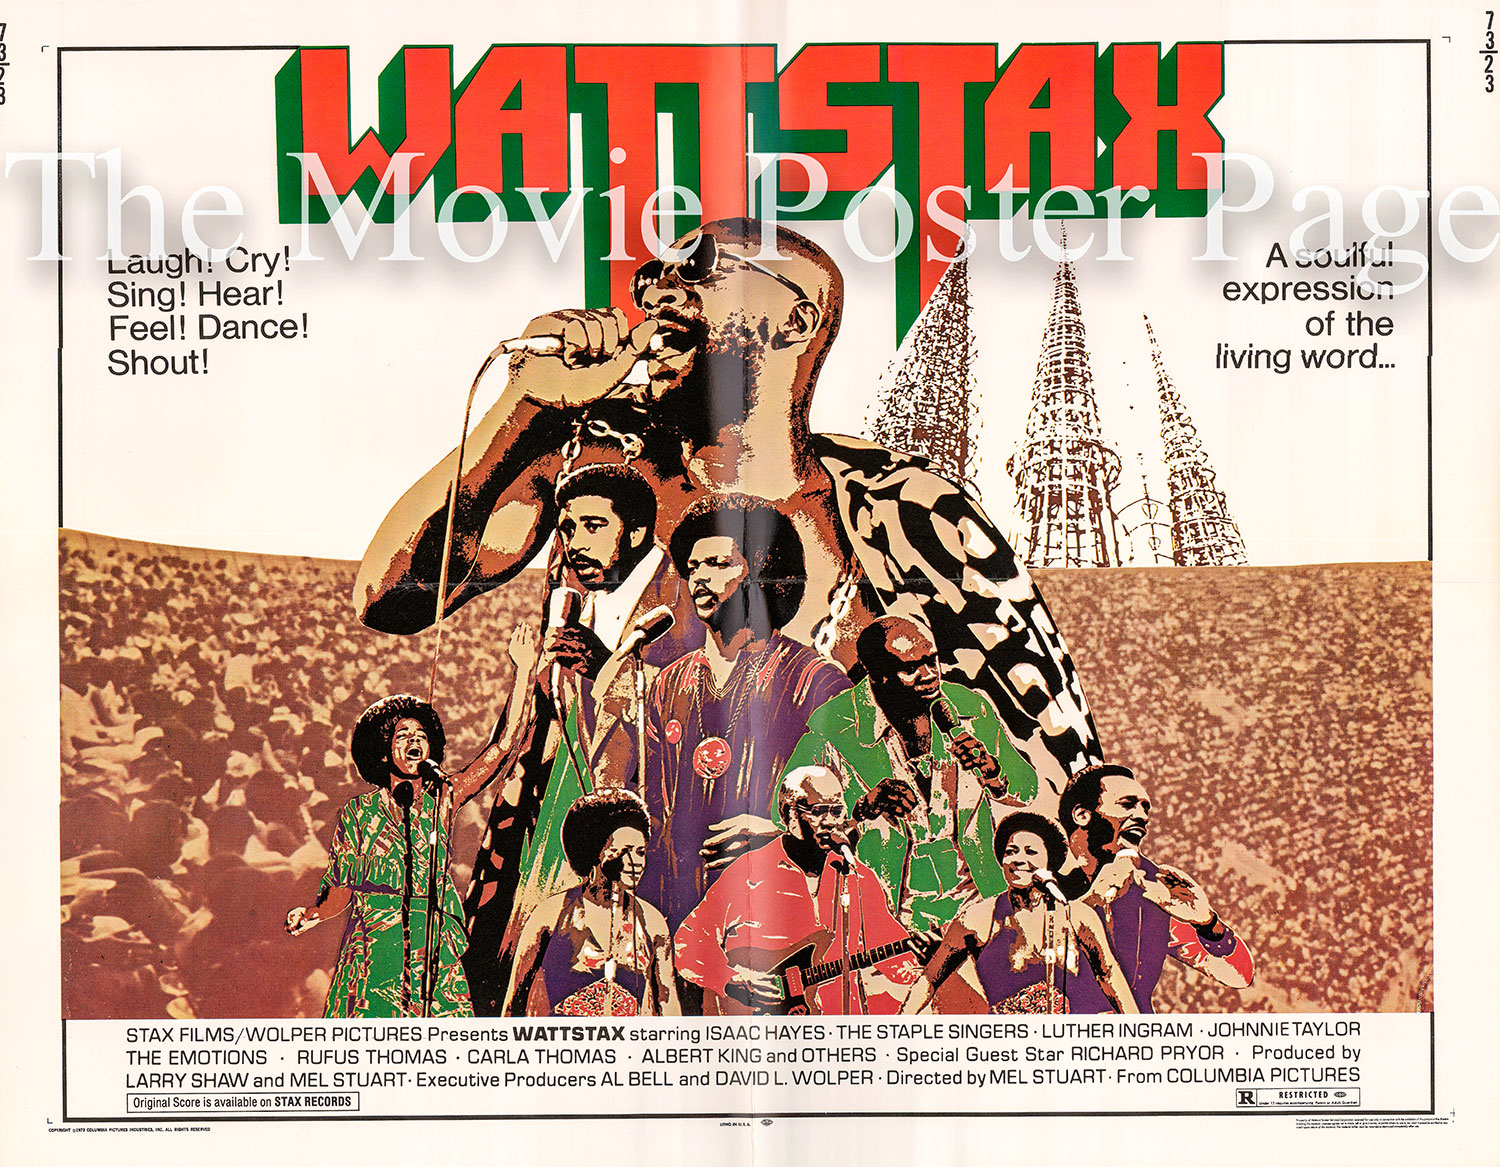 Pictured is a US half-sheet promotional poster for the 1973 Mel Stuart film Wattstax starring The Staple Singers and other performers.